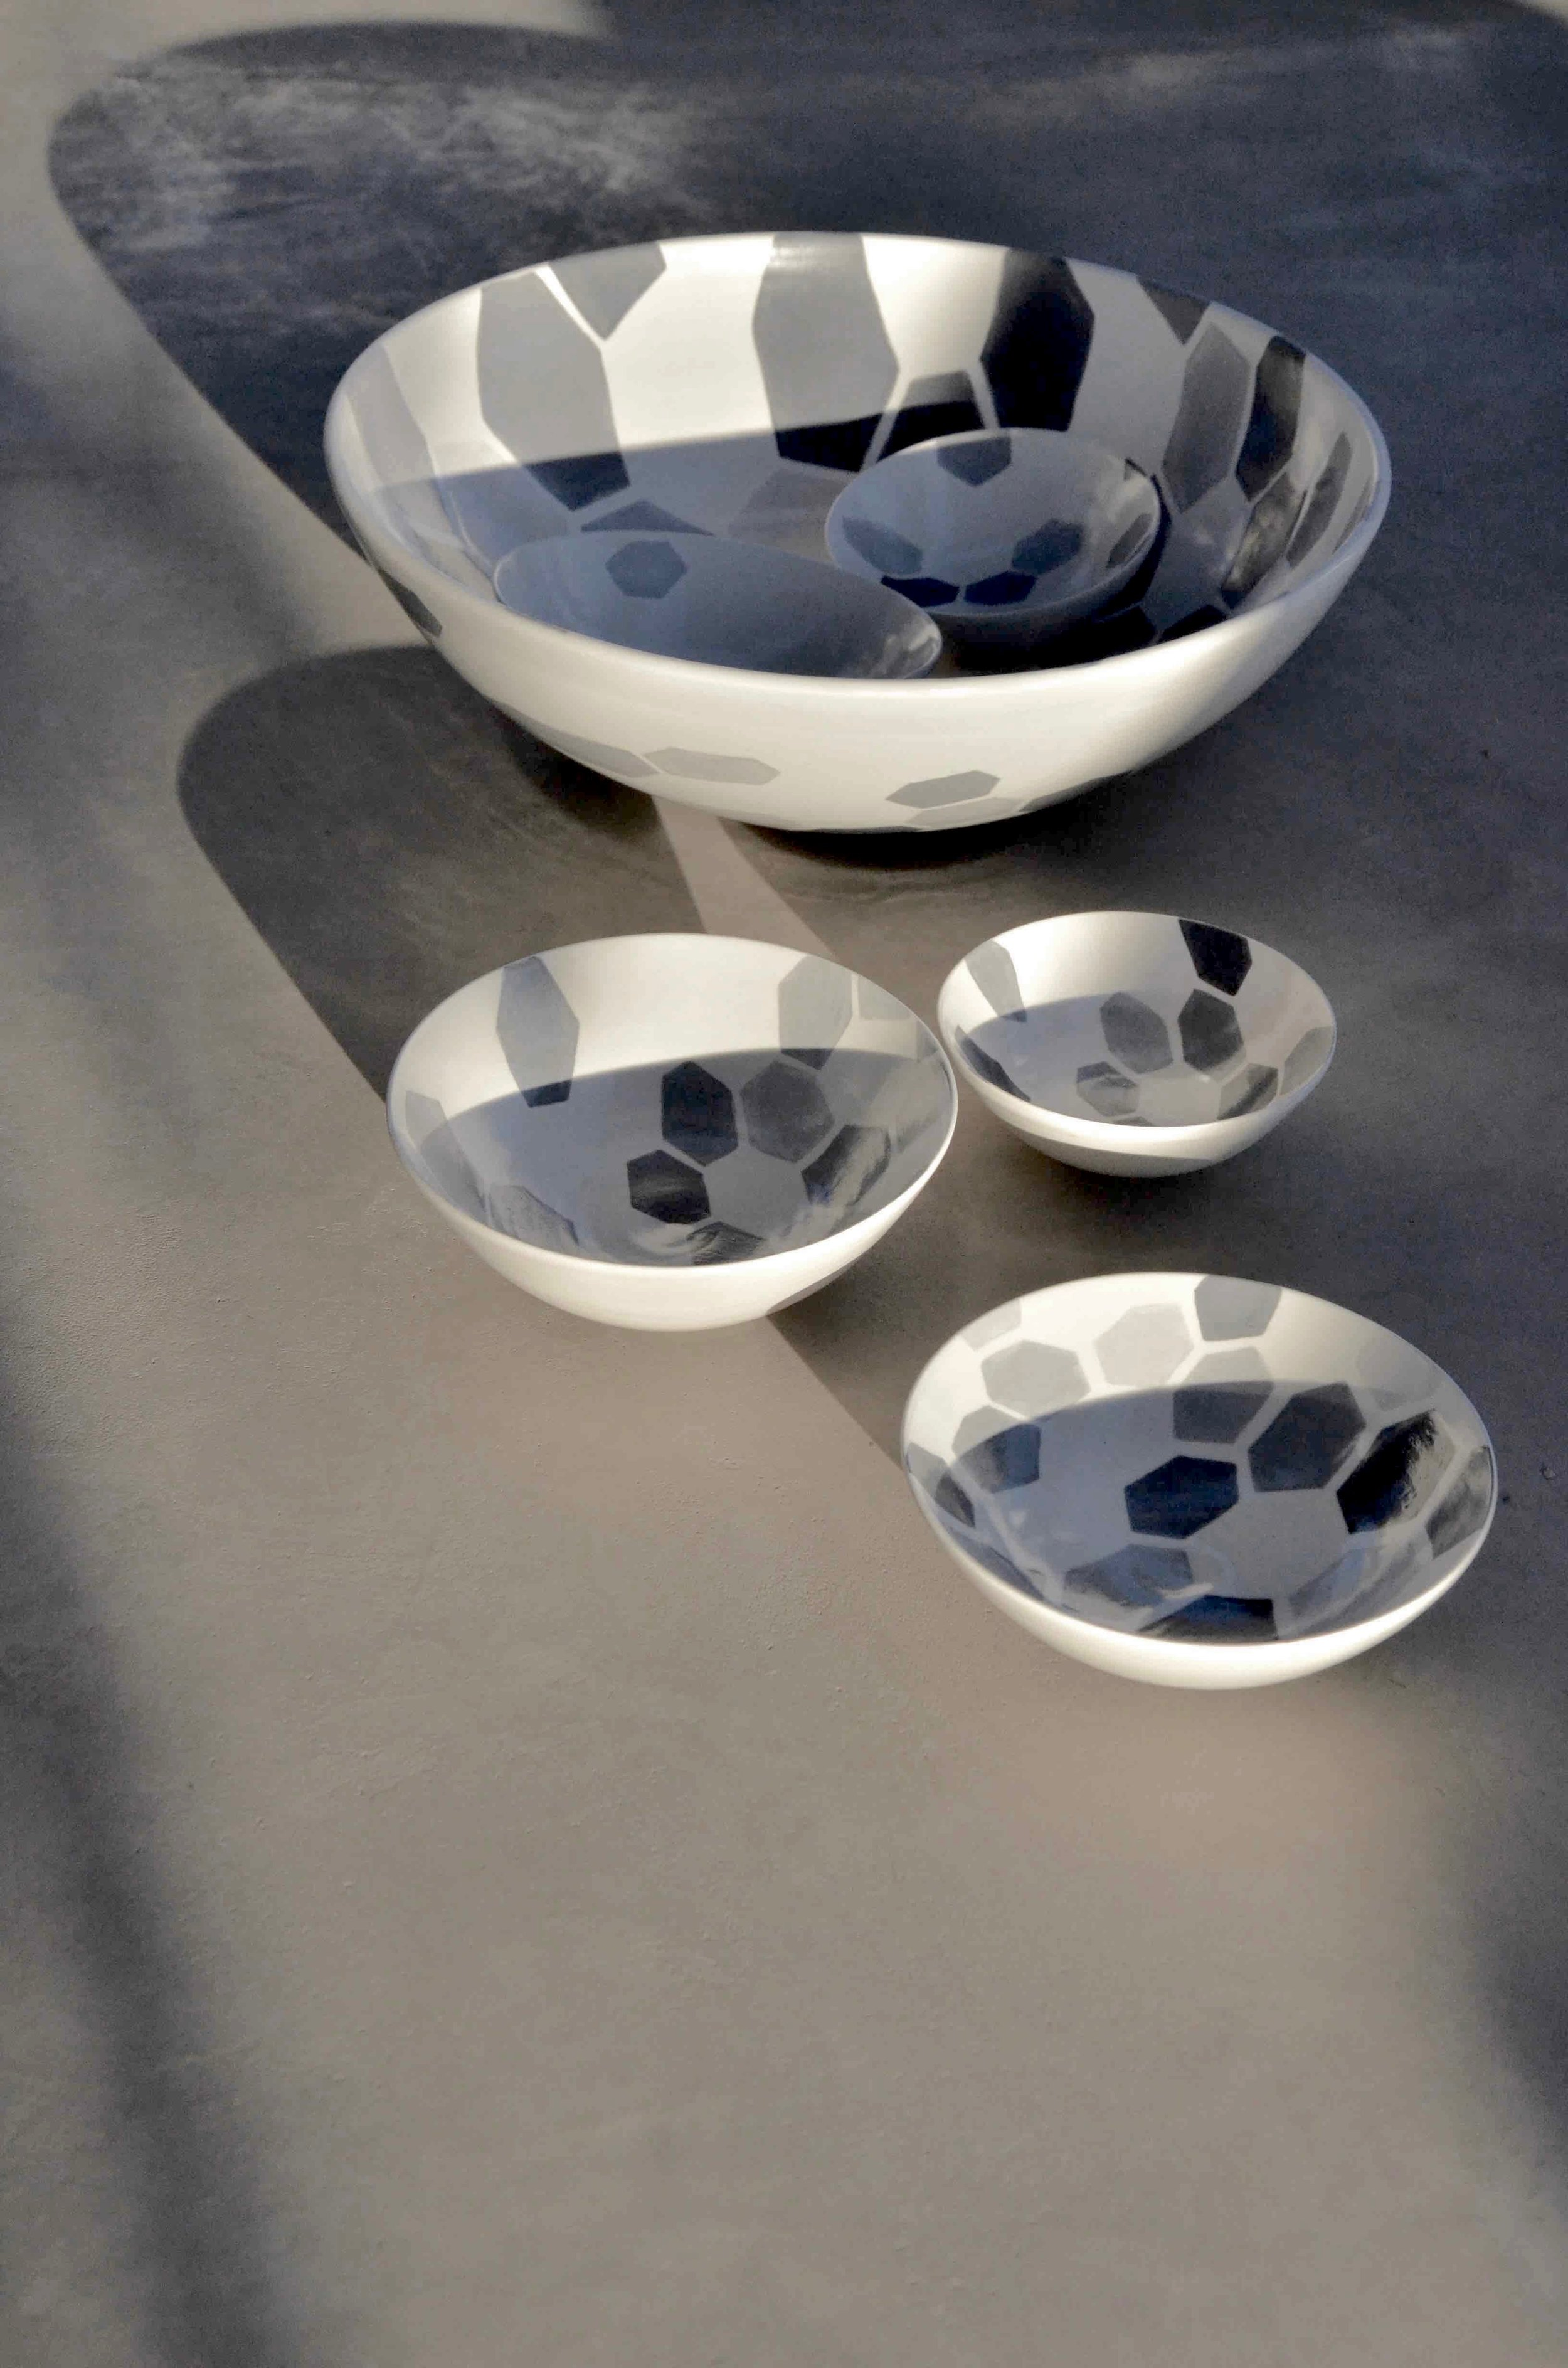 white ceramic body heavy: grey hexagon perspective bowl 16x38 (350E). white ceramic body light bowl 7x20cm (E) 6x15cm (E)